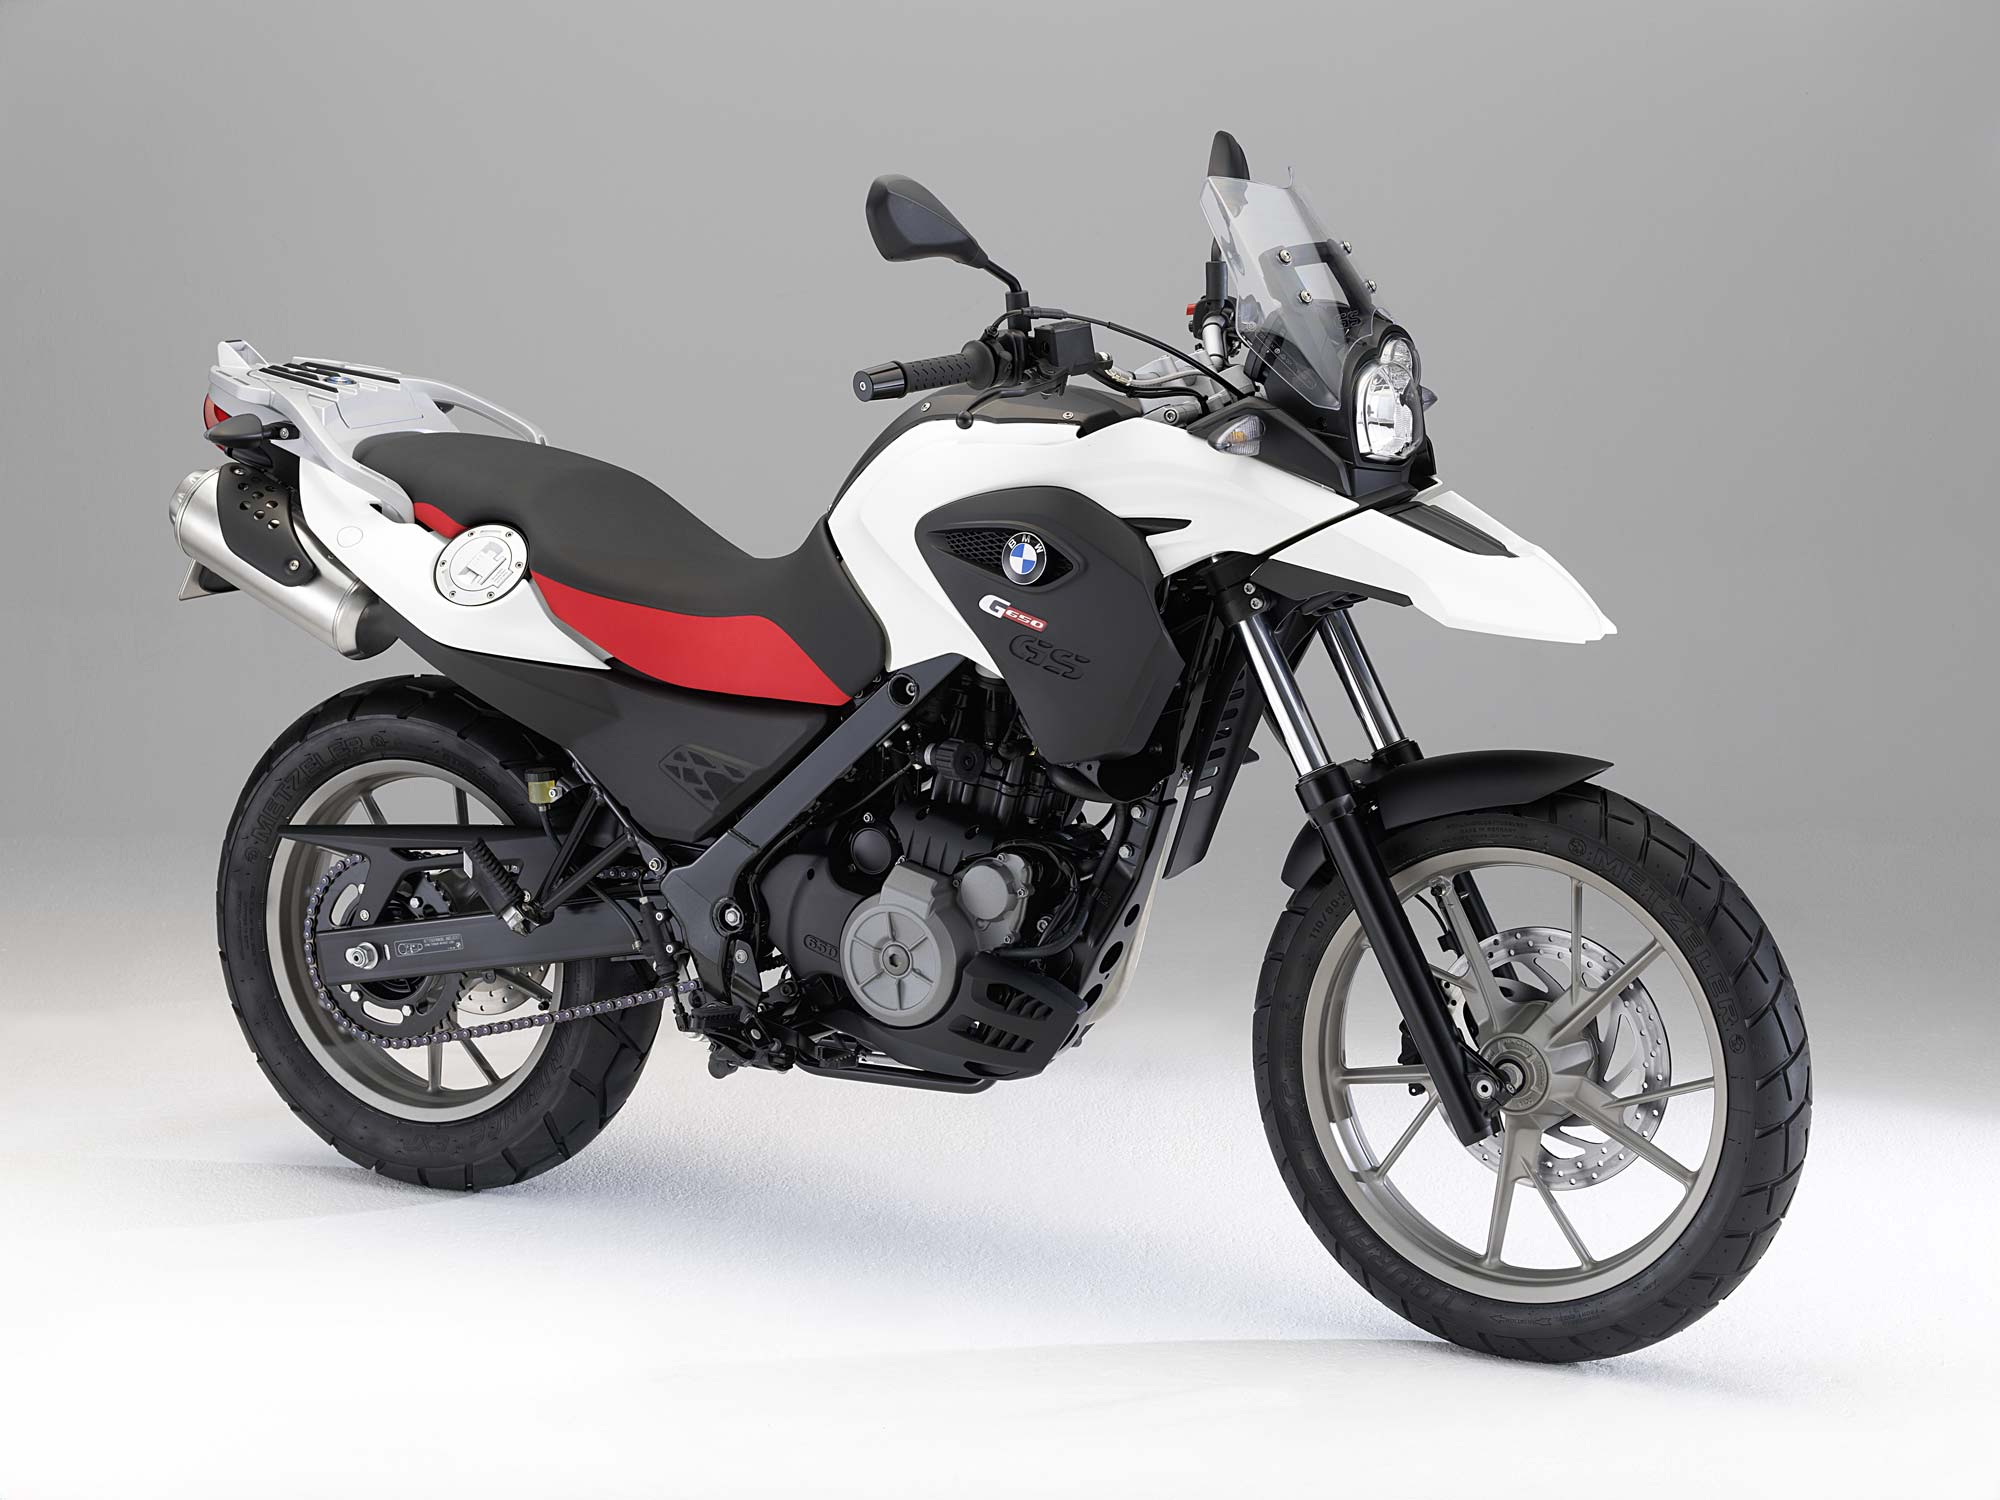 BMW G 650 GS 2011 images #8380